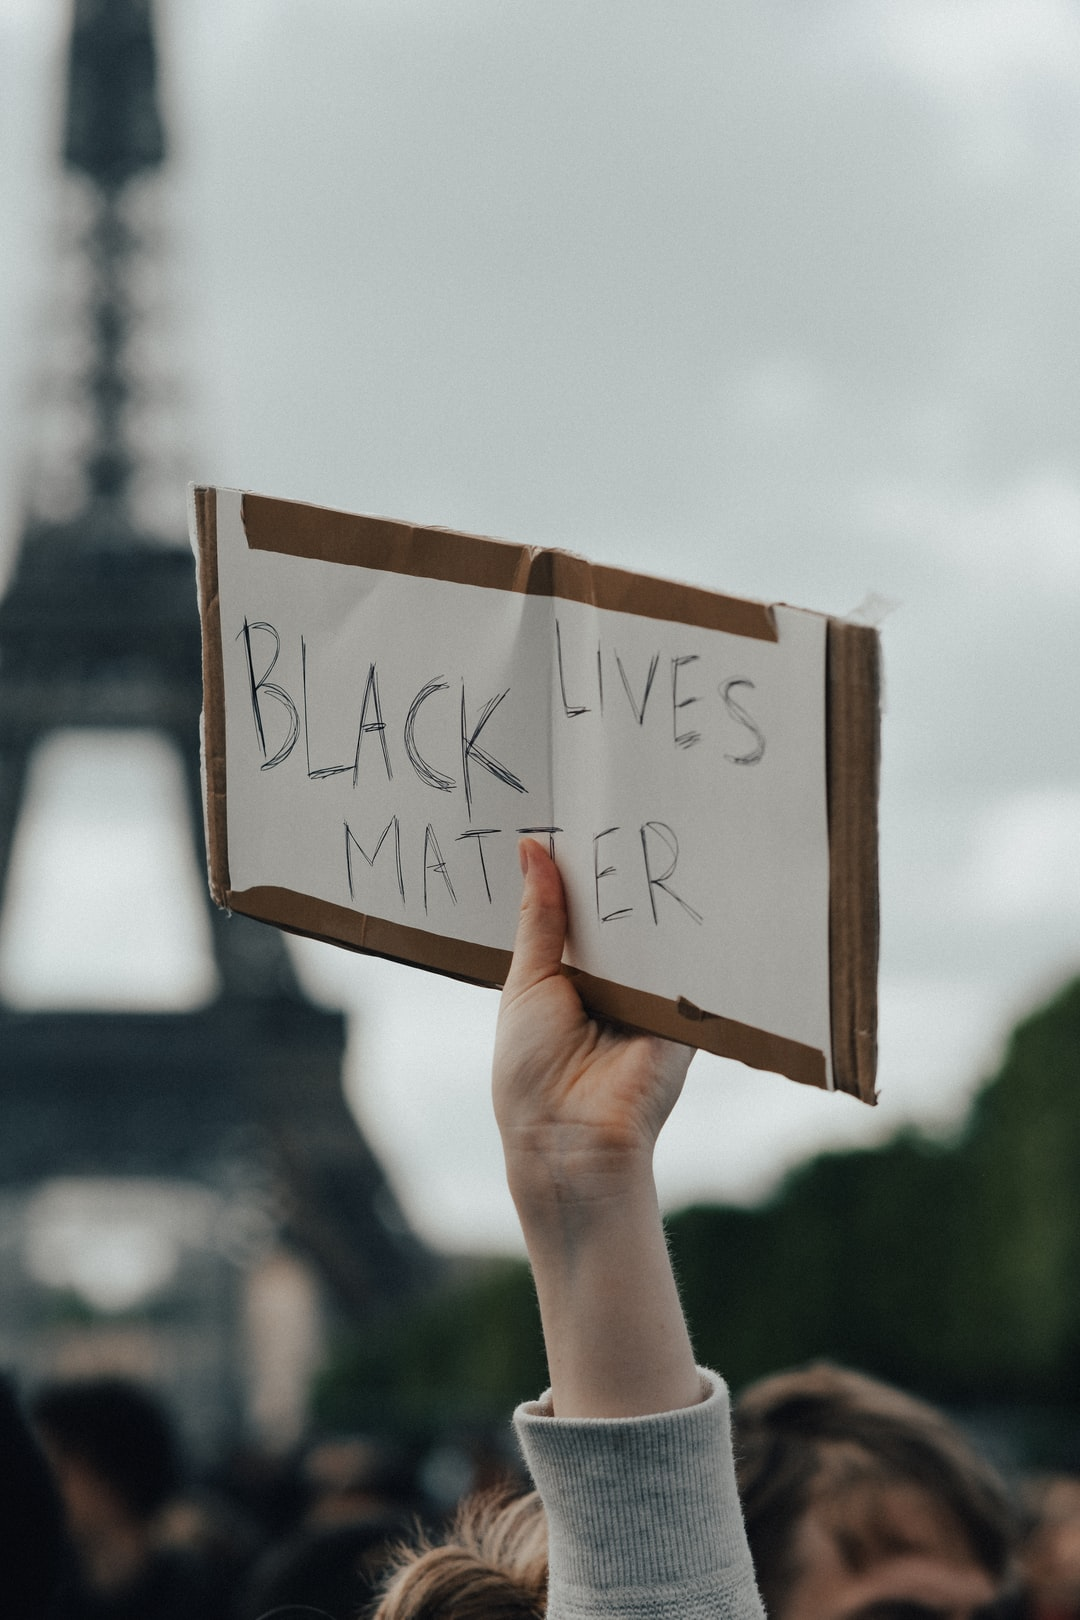 Black lives matter sign with the Eiffel Tower in the background